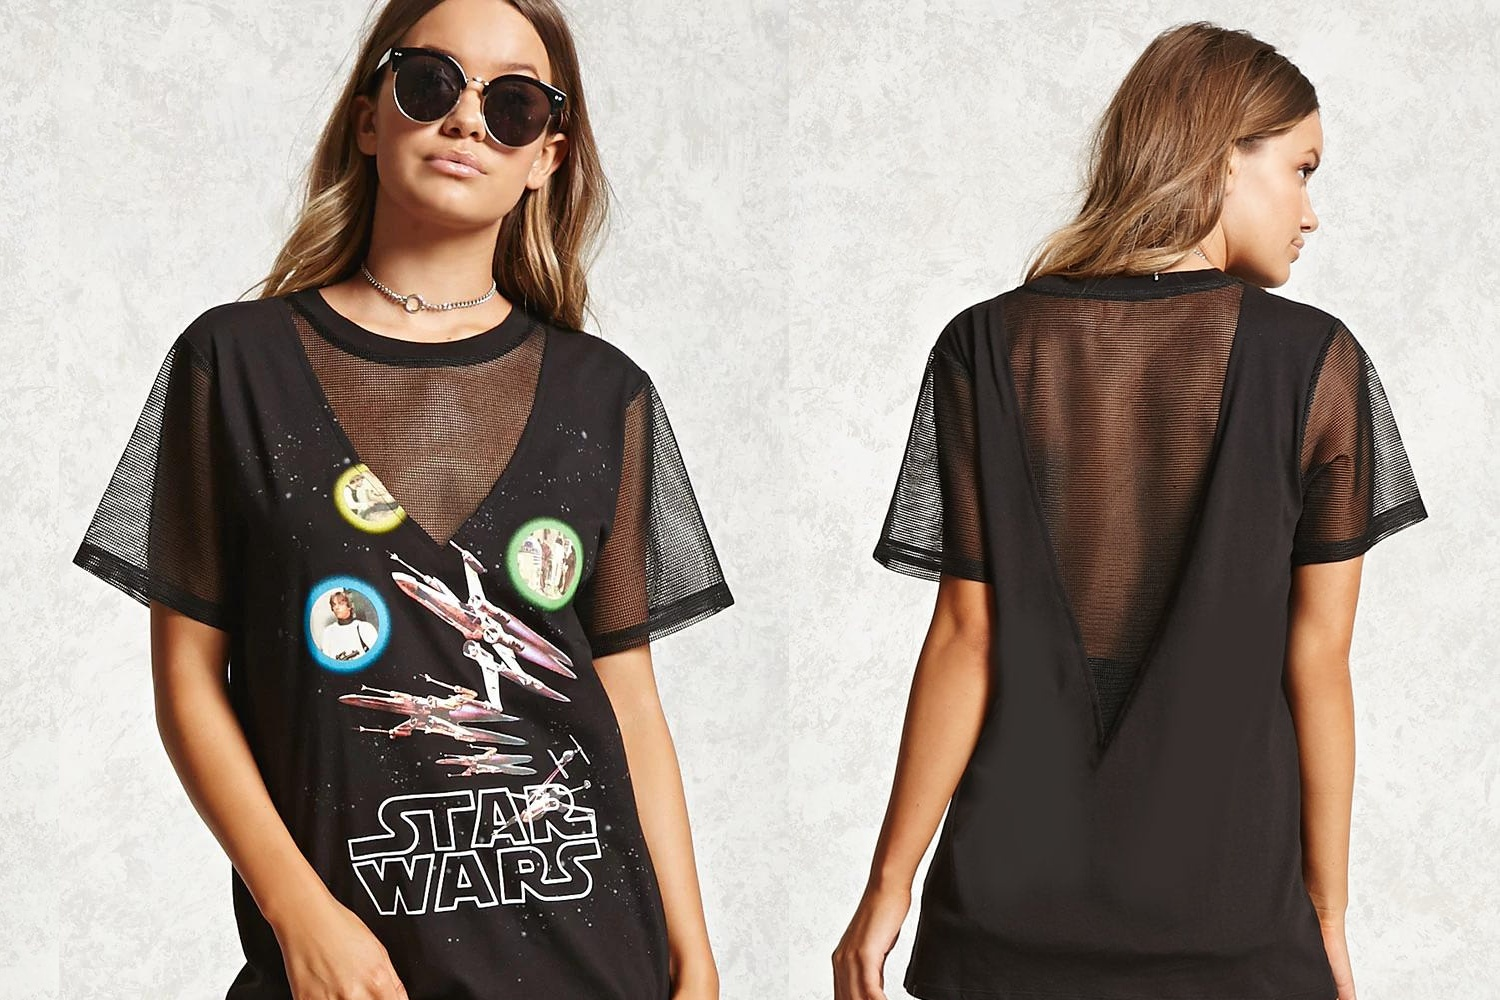 Star Wars Mesh Panel Tee at Forever 21